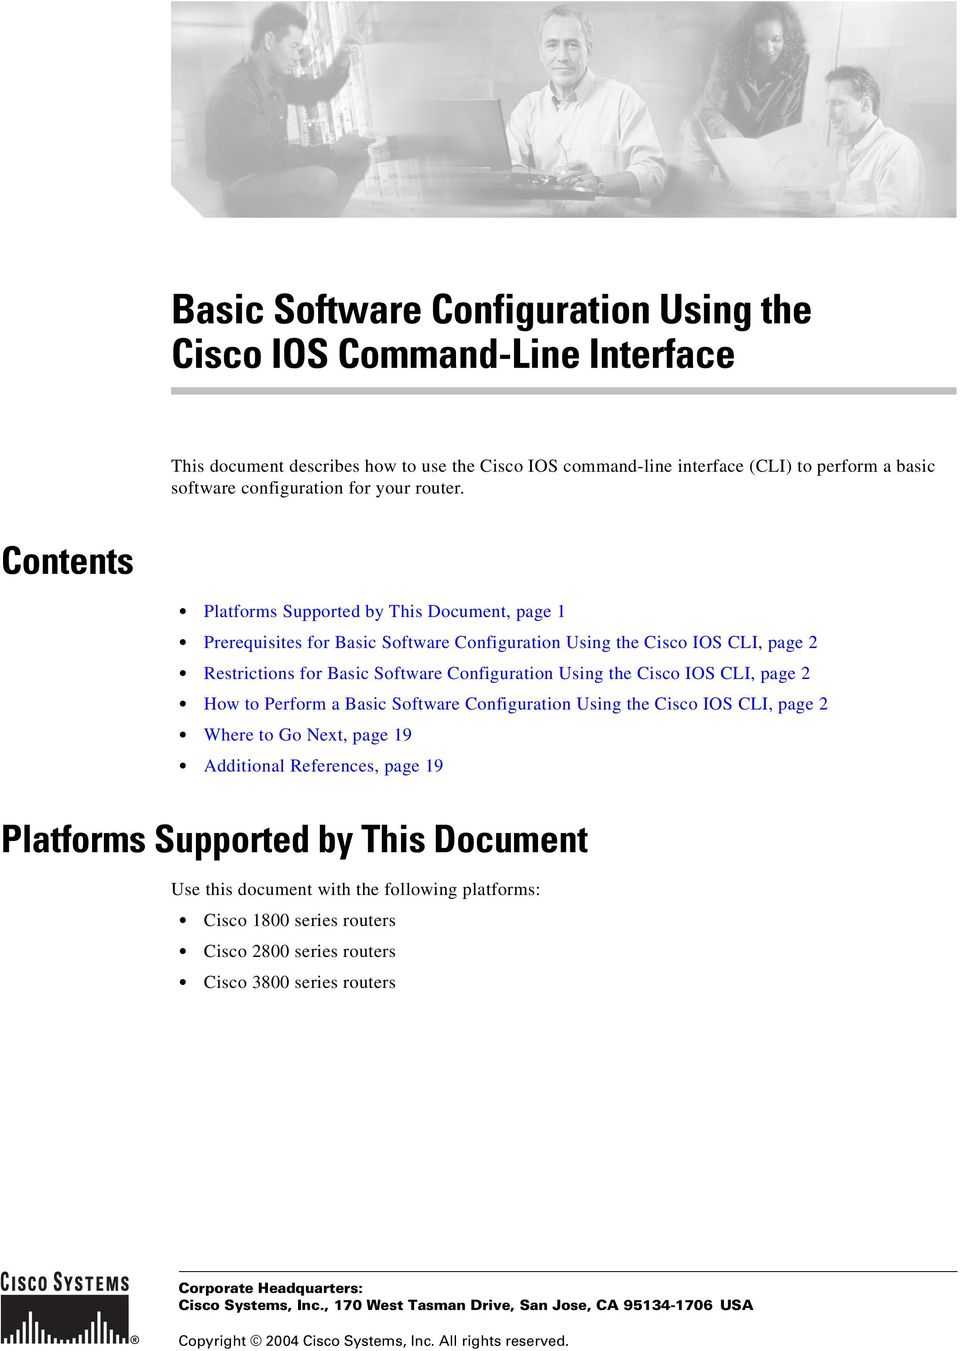 Contents Platforms Supported by This Document, page 1 Prerequisites for Basic Software Configuration Using the Cisco IOS CLI, page 2 Restrictions for Basic Software Configuration Using the Cisco IOS